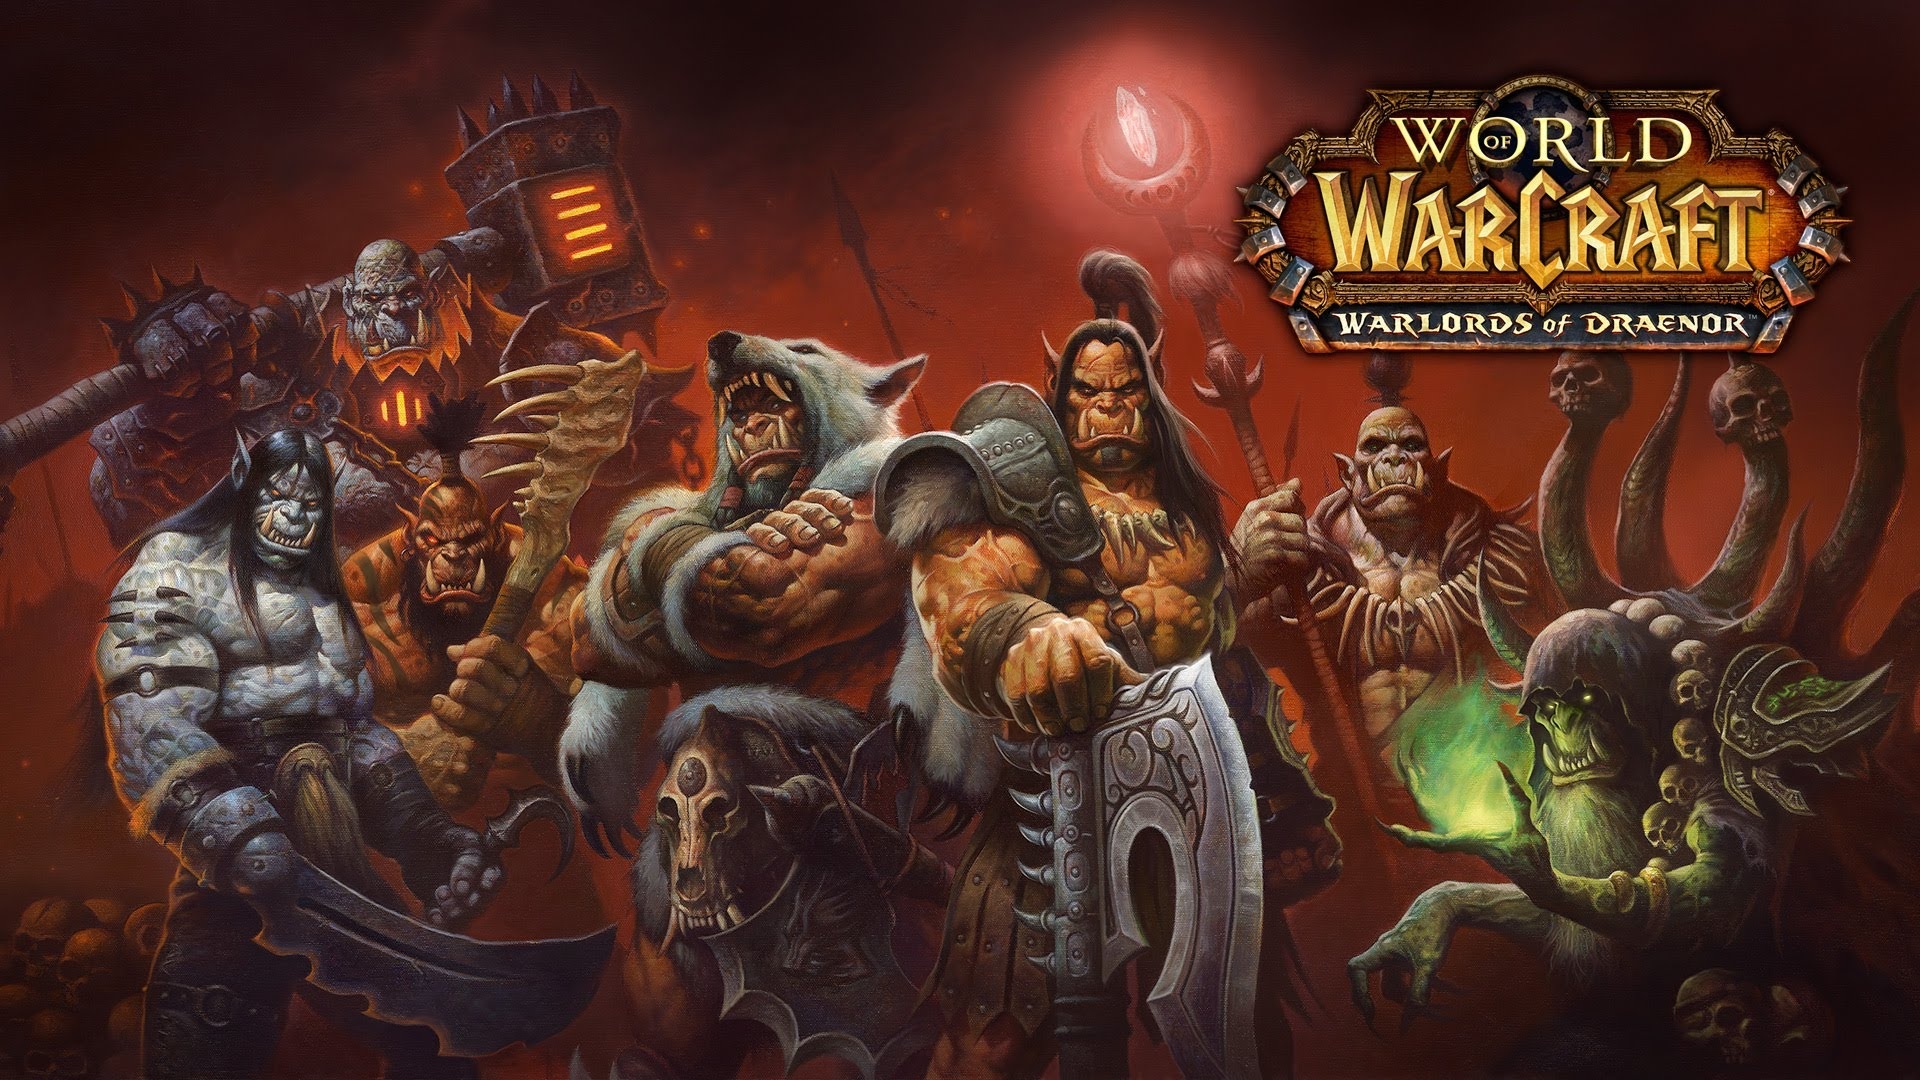 Leaked – World of Warcraft: Warlords of Draenor Boss' Cinematic Finale